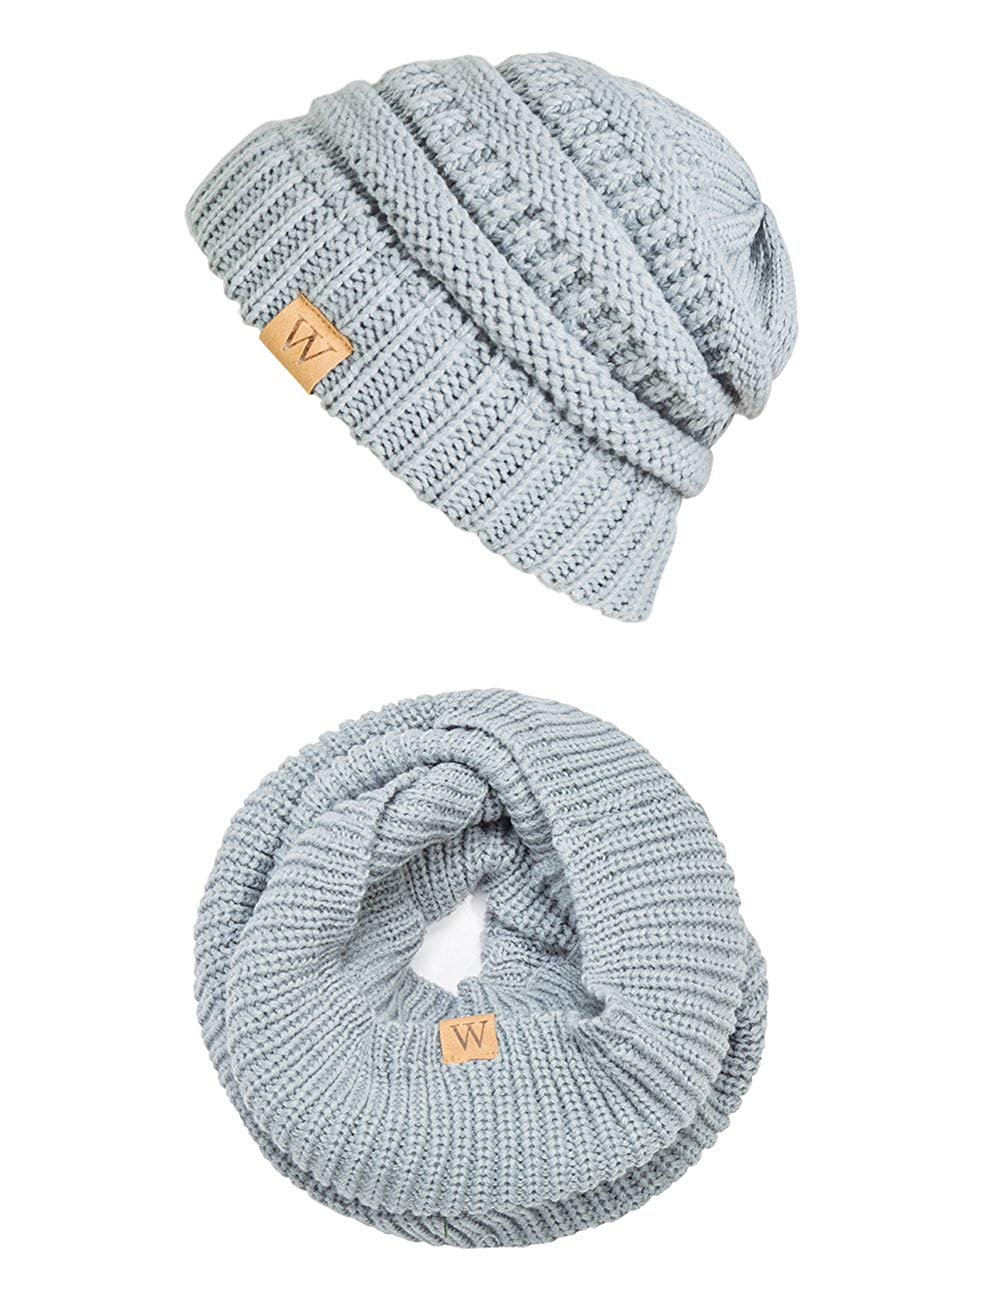 8935fc012869d Get Quotations · EVRFELAN Winter Warm Beanie Scarf Set Women - Knit  Infinity Loop Scarf and Hat Sets for